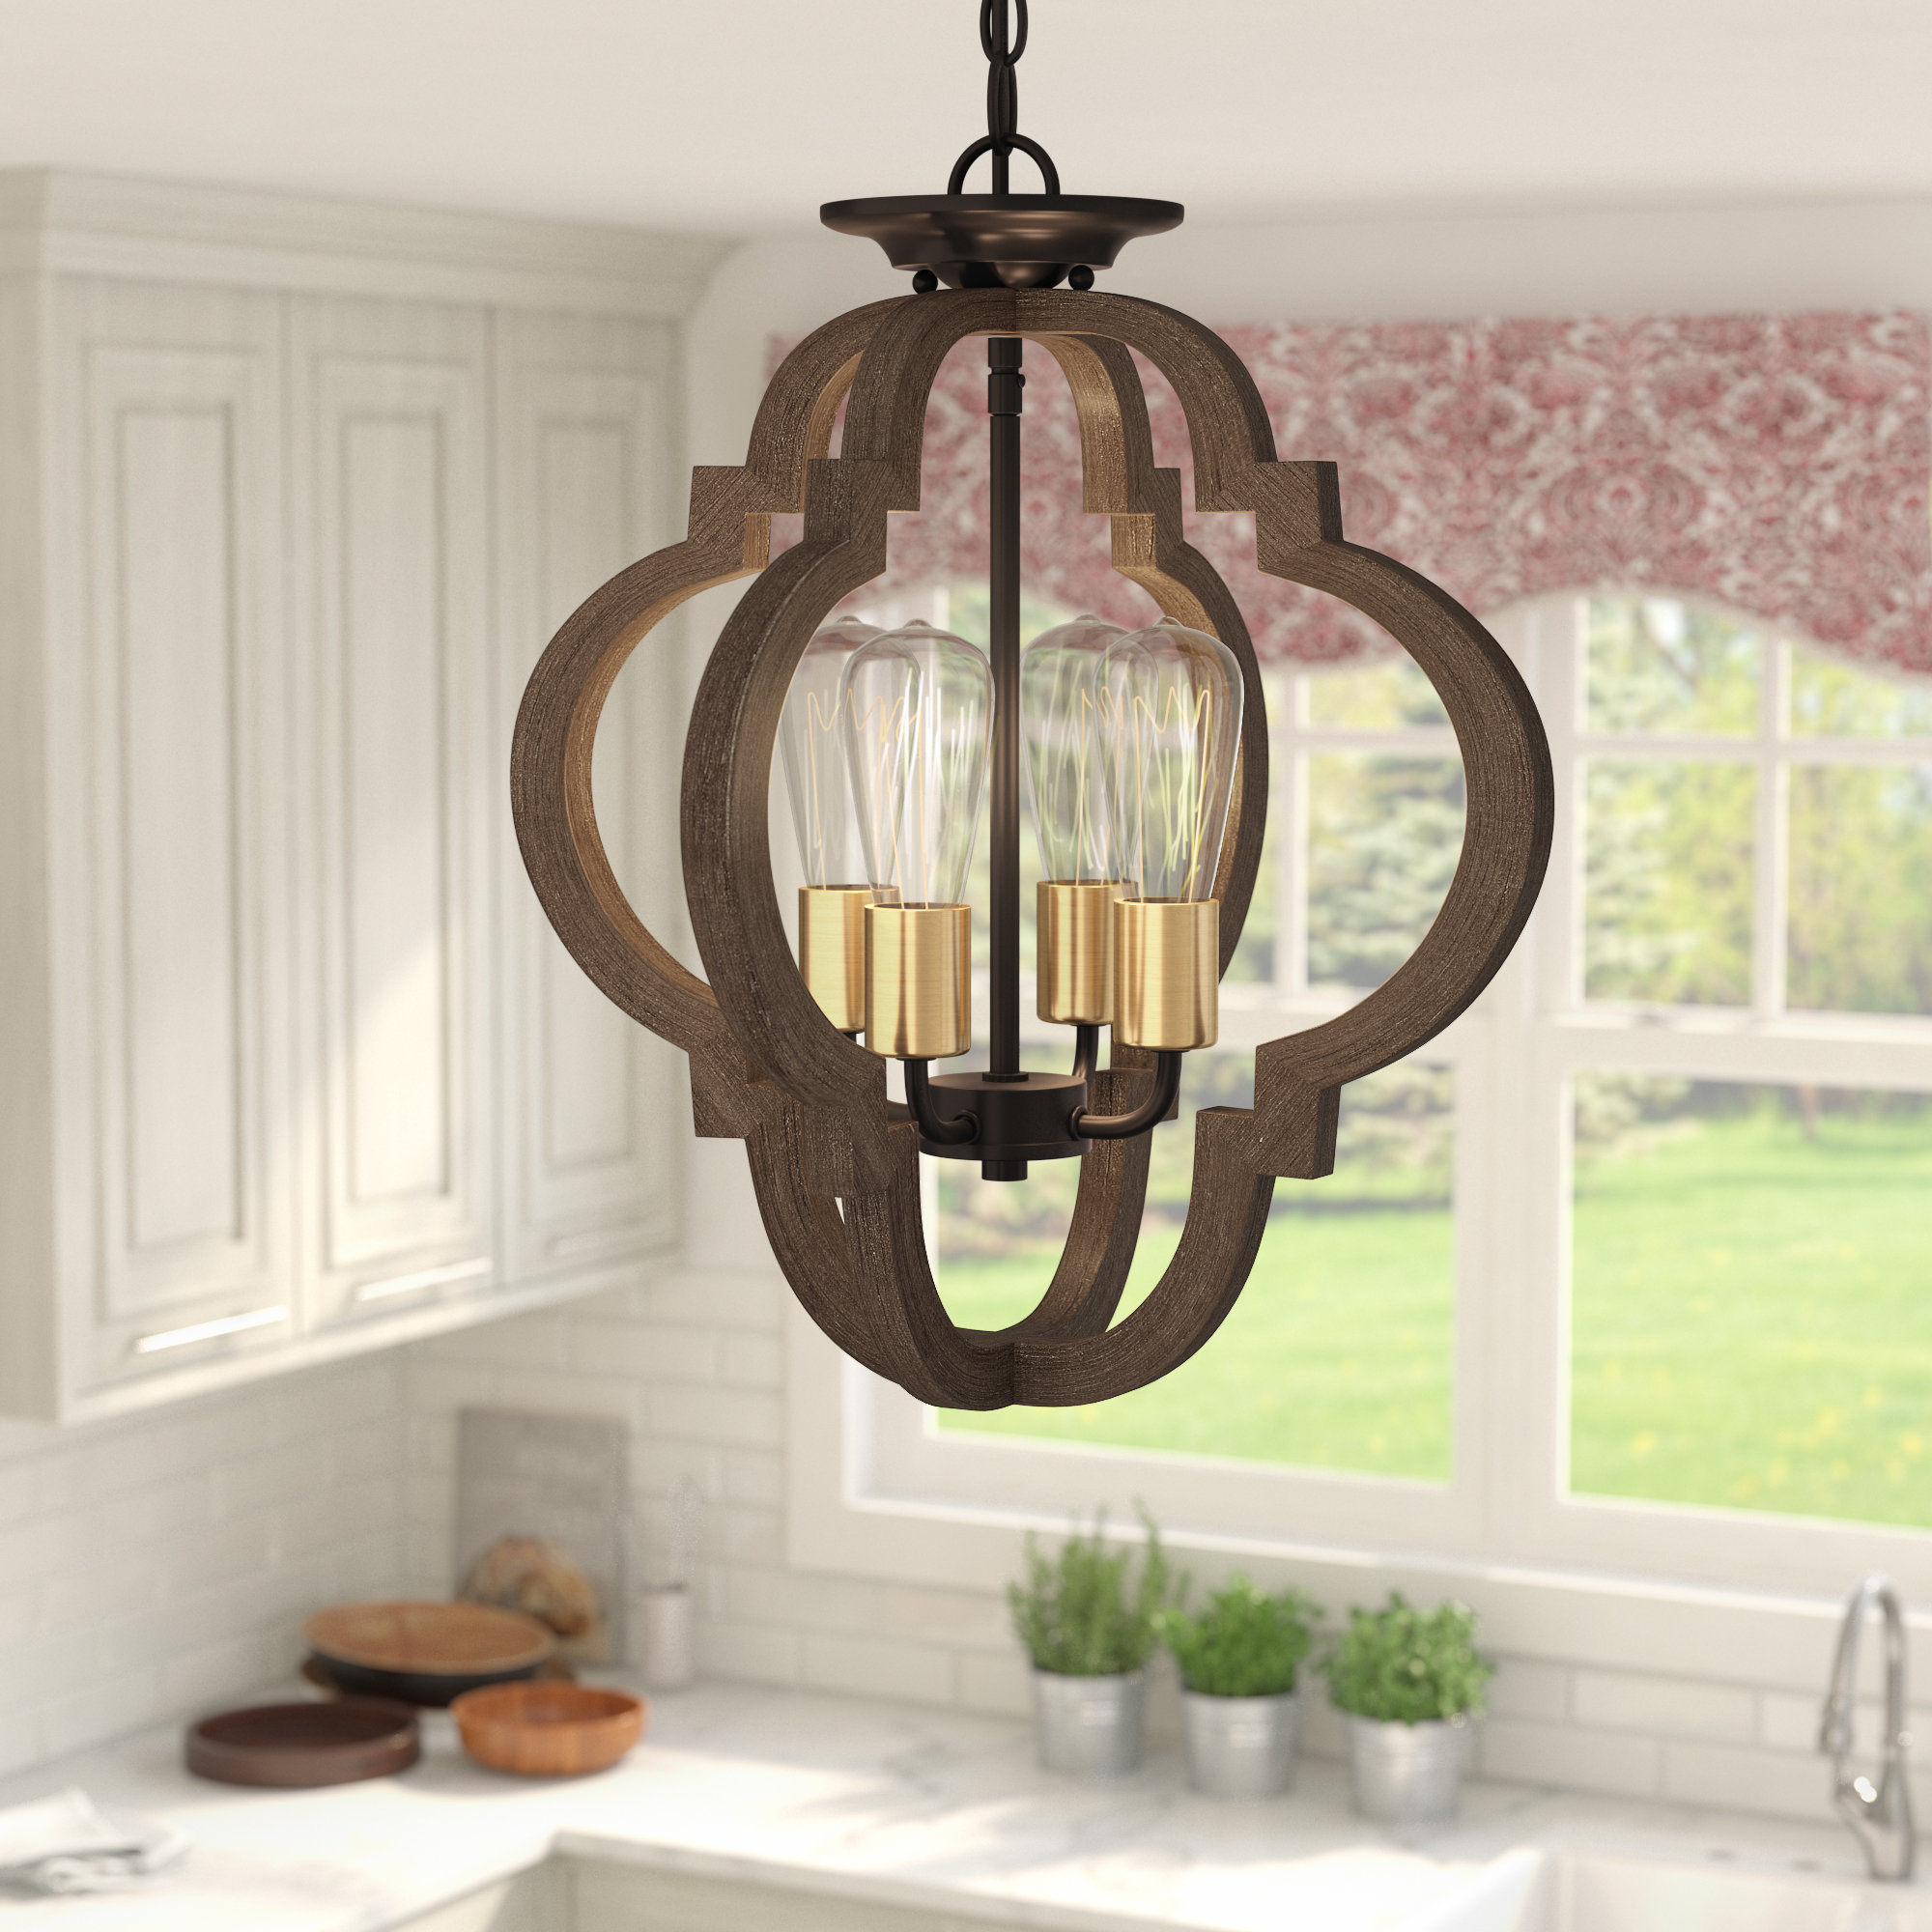 Most Popular Kaycee 4 Light Geometric Chandelier Intended For Lynn 6 Light Geometric Chandeliers (View 7 of 25)